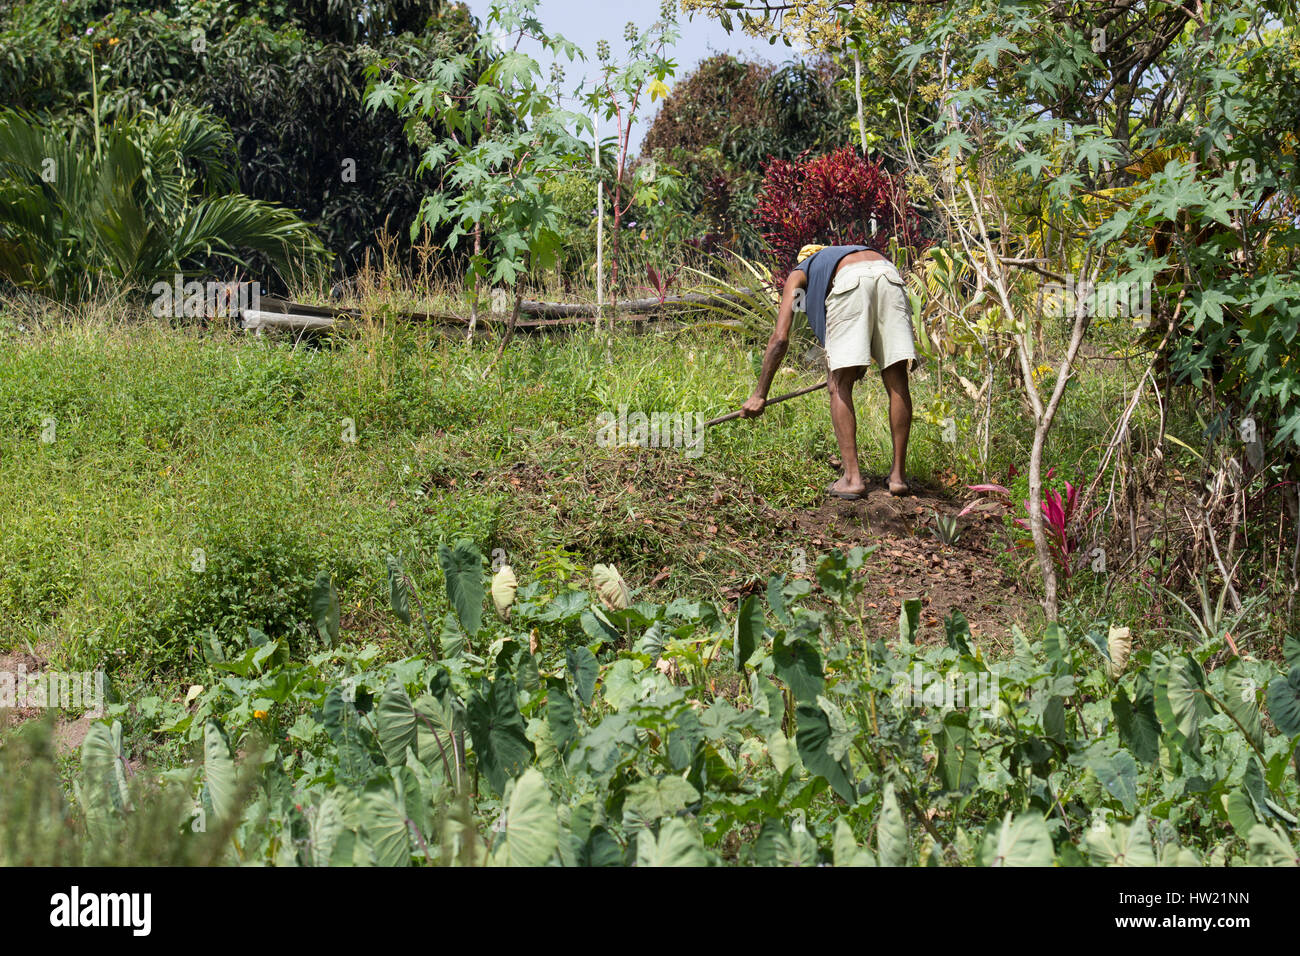 Man working in the farm fields in St. Lucia Stock Photo